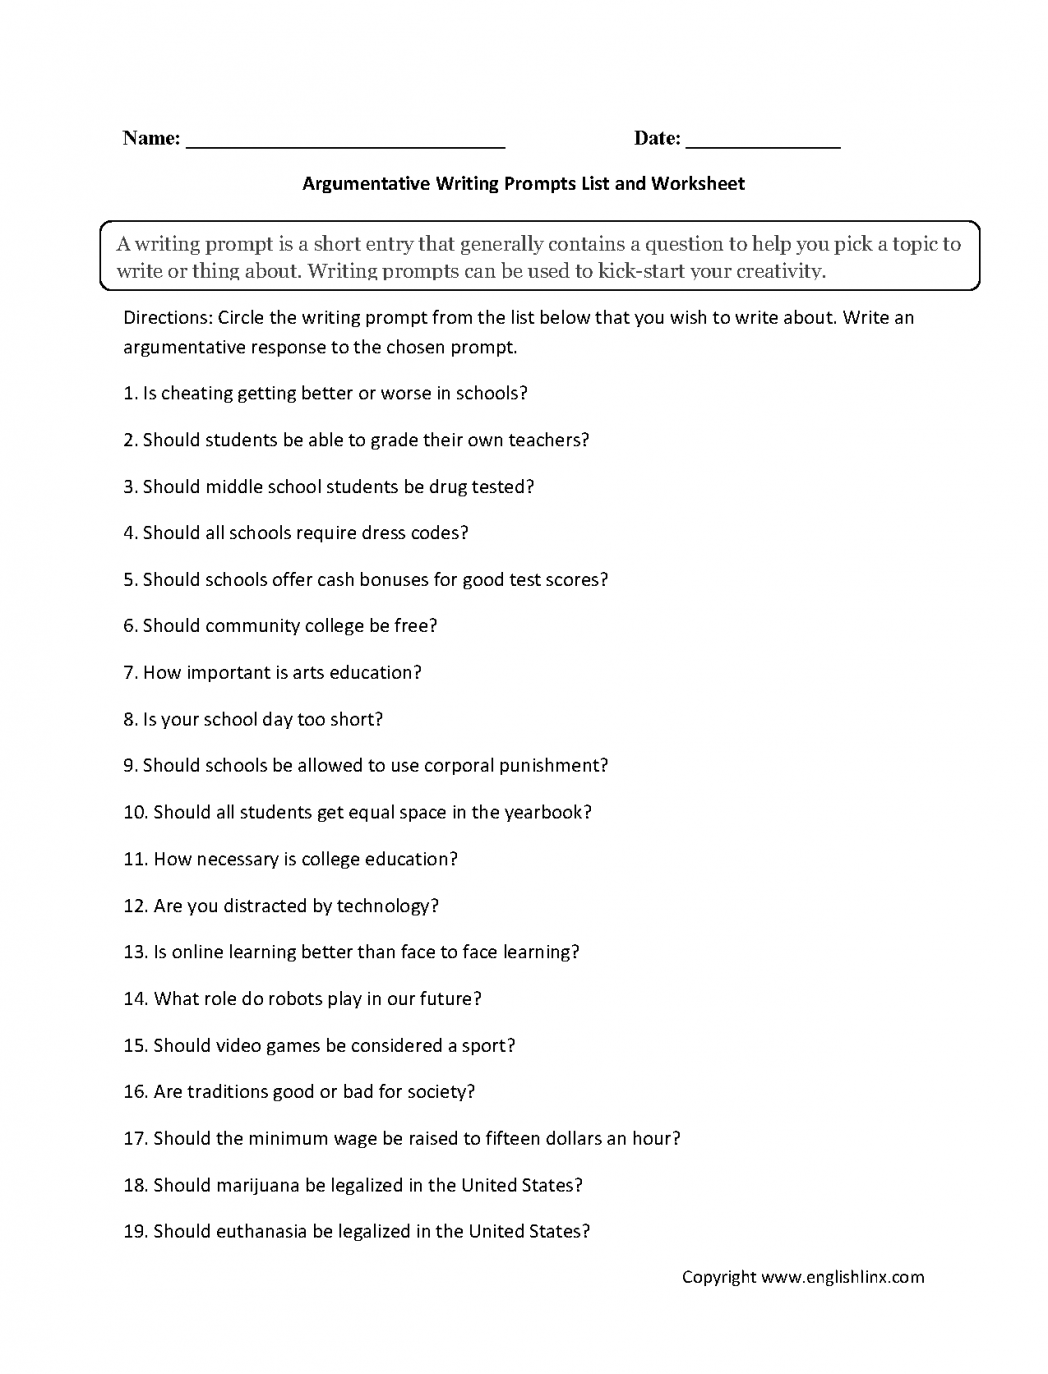 009 Argument Essay Prompts Goal Blockety Co Argumentative Topics Writing List Work For High School Subjects About Animals On Racism College Sports Middle 1048x1374 Imposing Ideas Fun Easy Examples Pdf Full